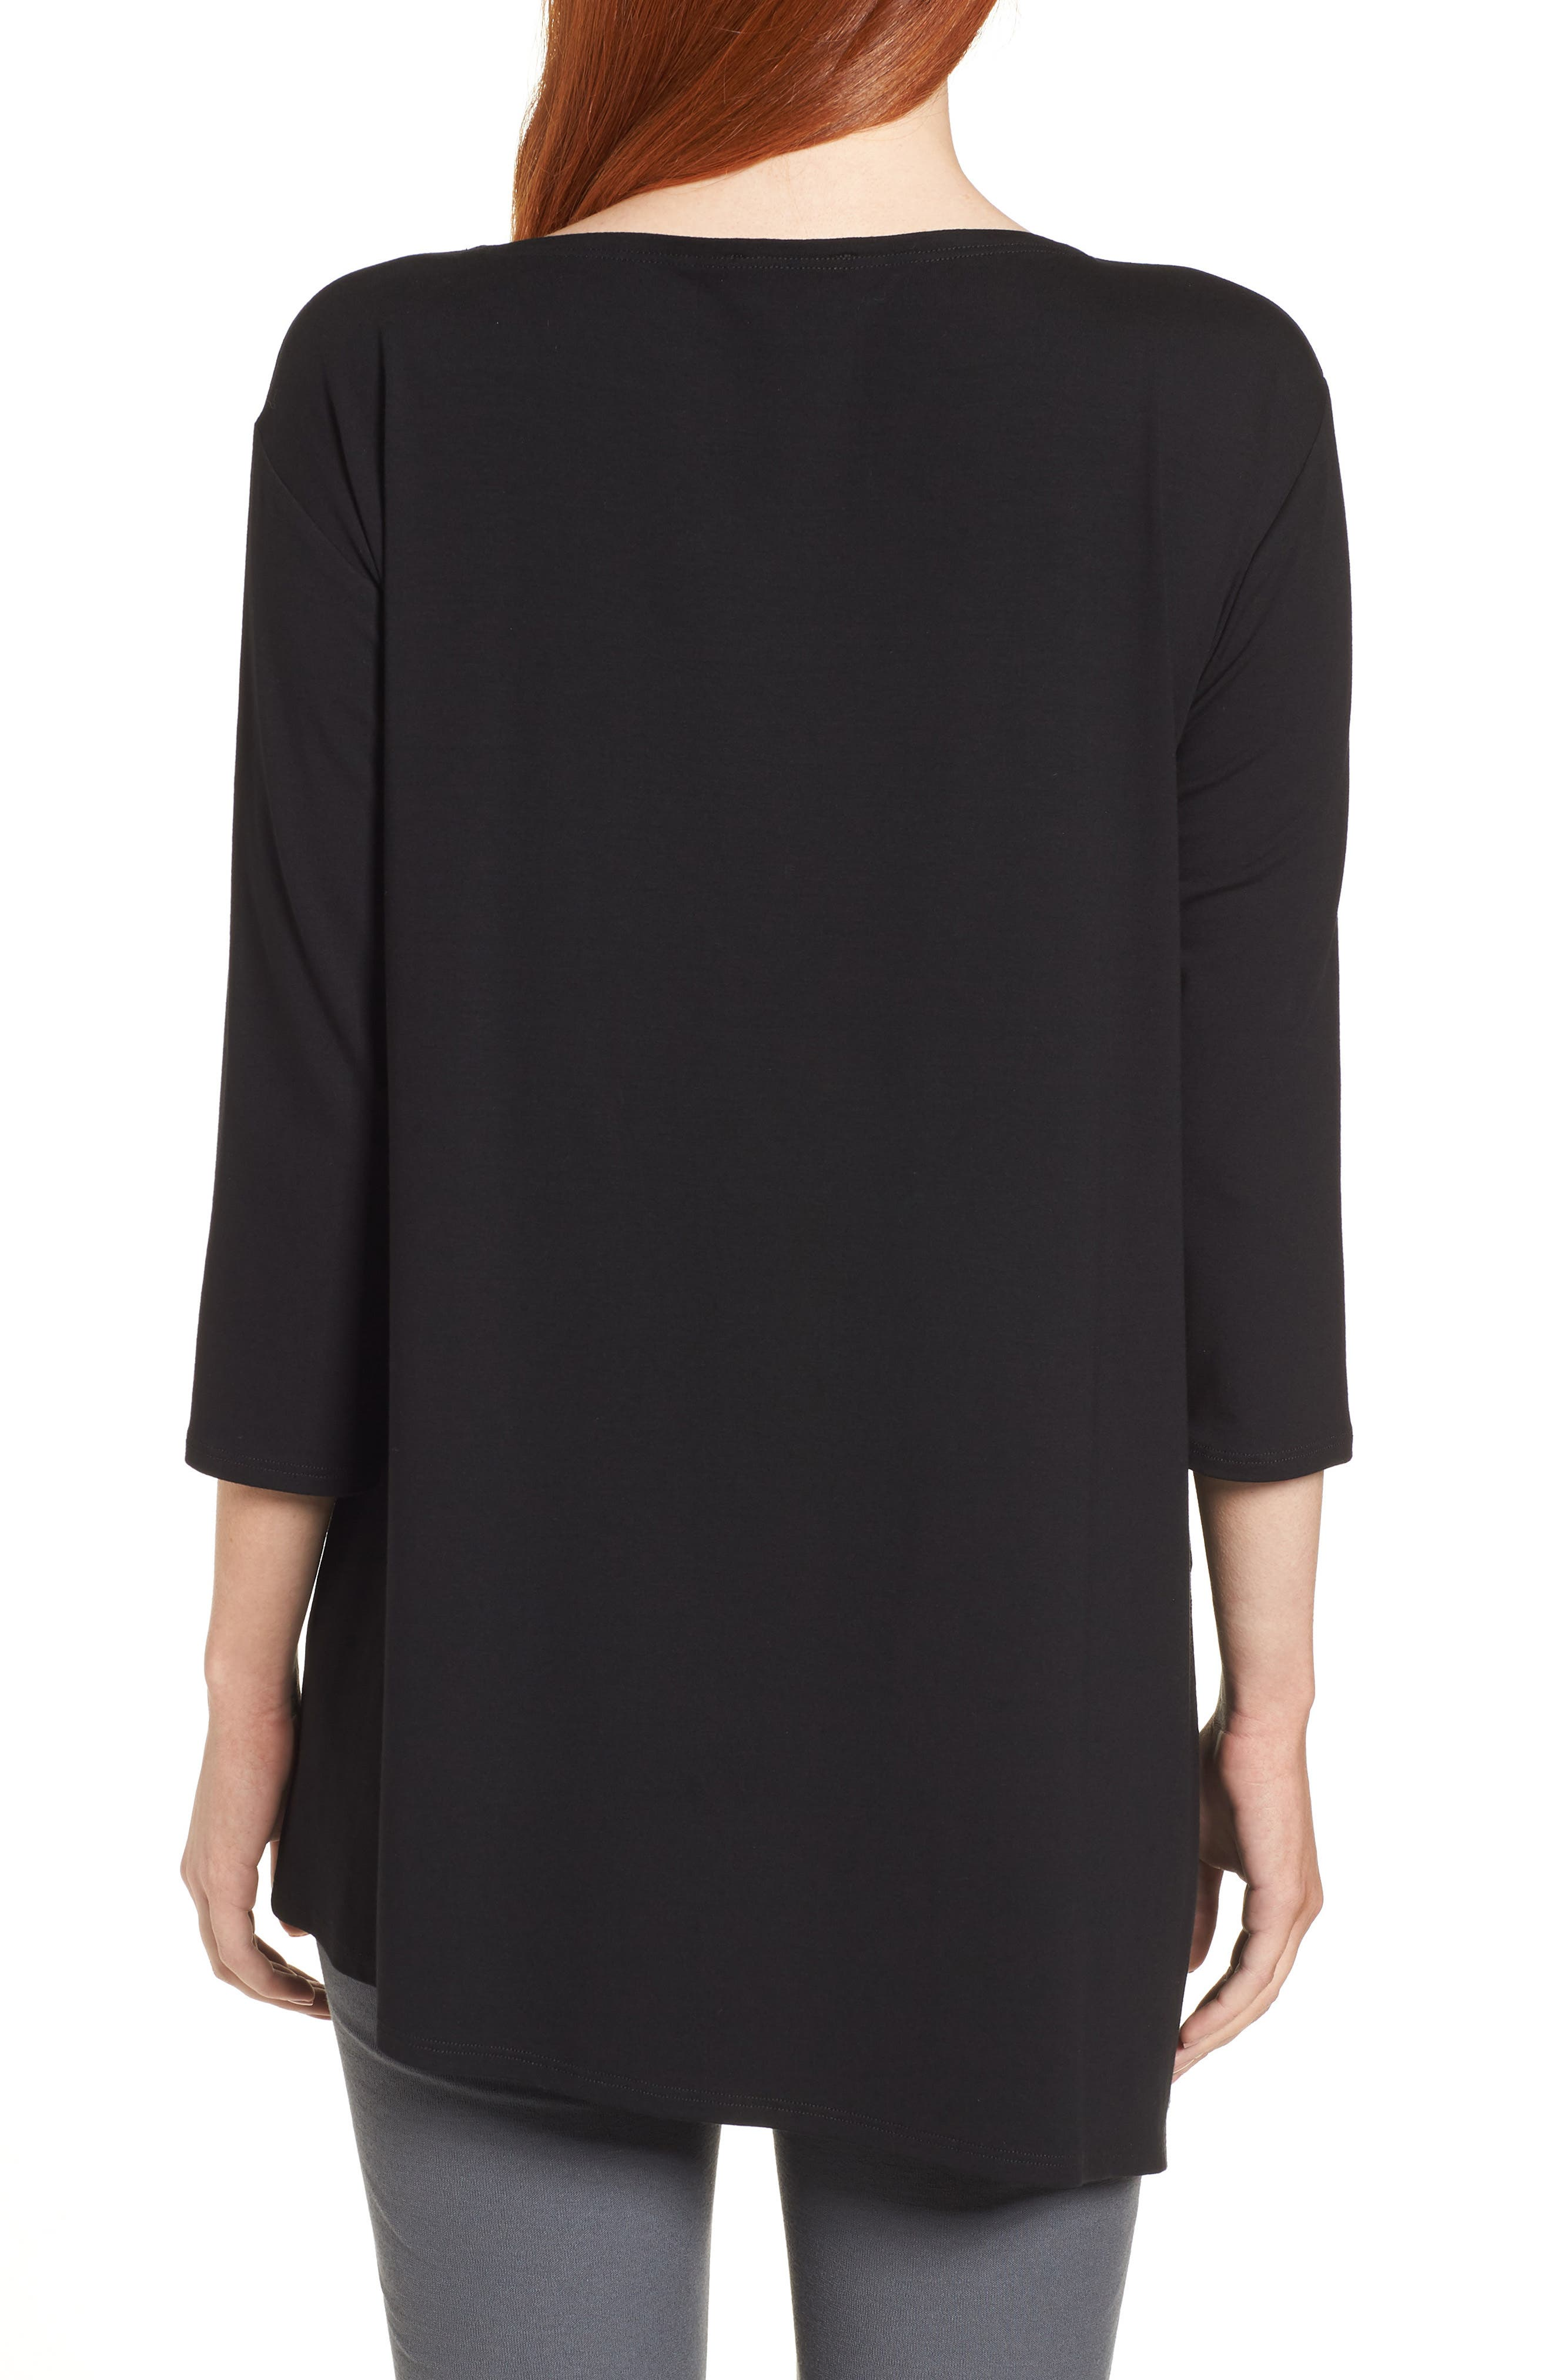 EILEEN FISHER,                             Asymmetrical Jersey Top,                             Alternate thumbnail 2, color,                             001